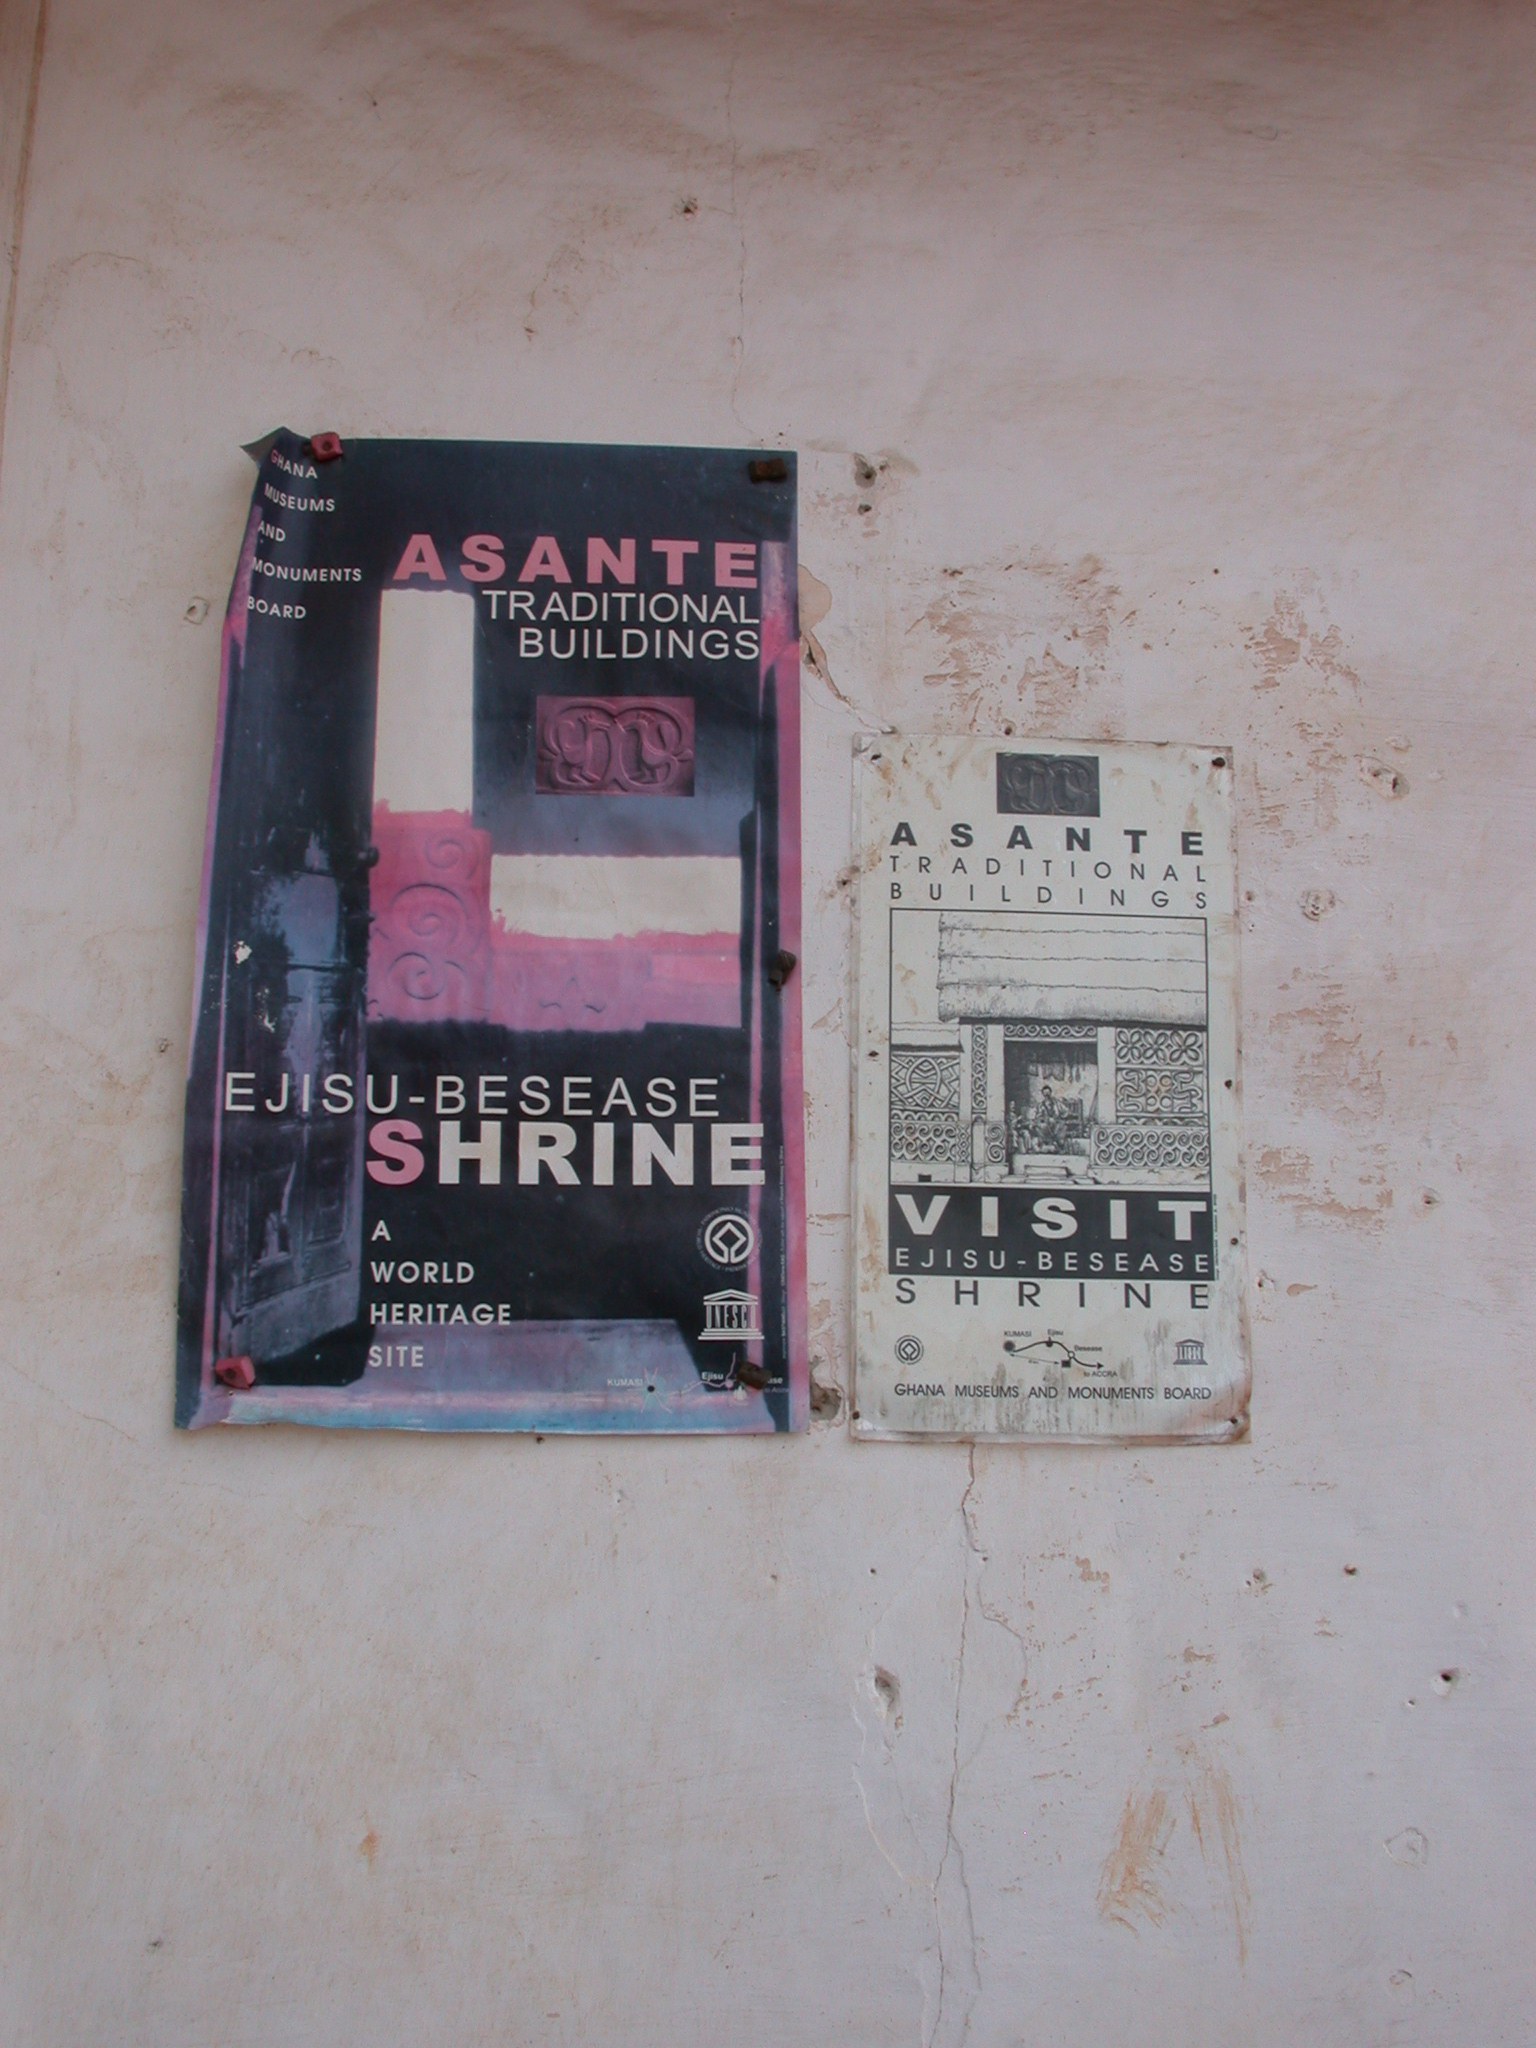 Signs for Asante Traditional Shrine at Ejisu-Besease, Ghana